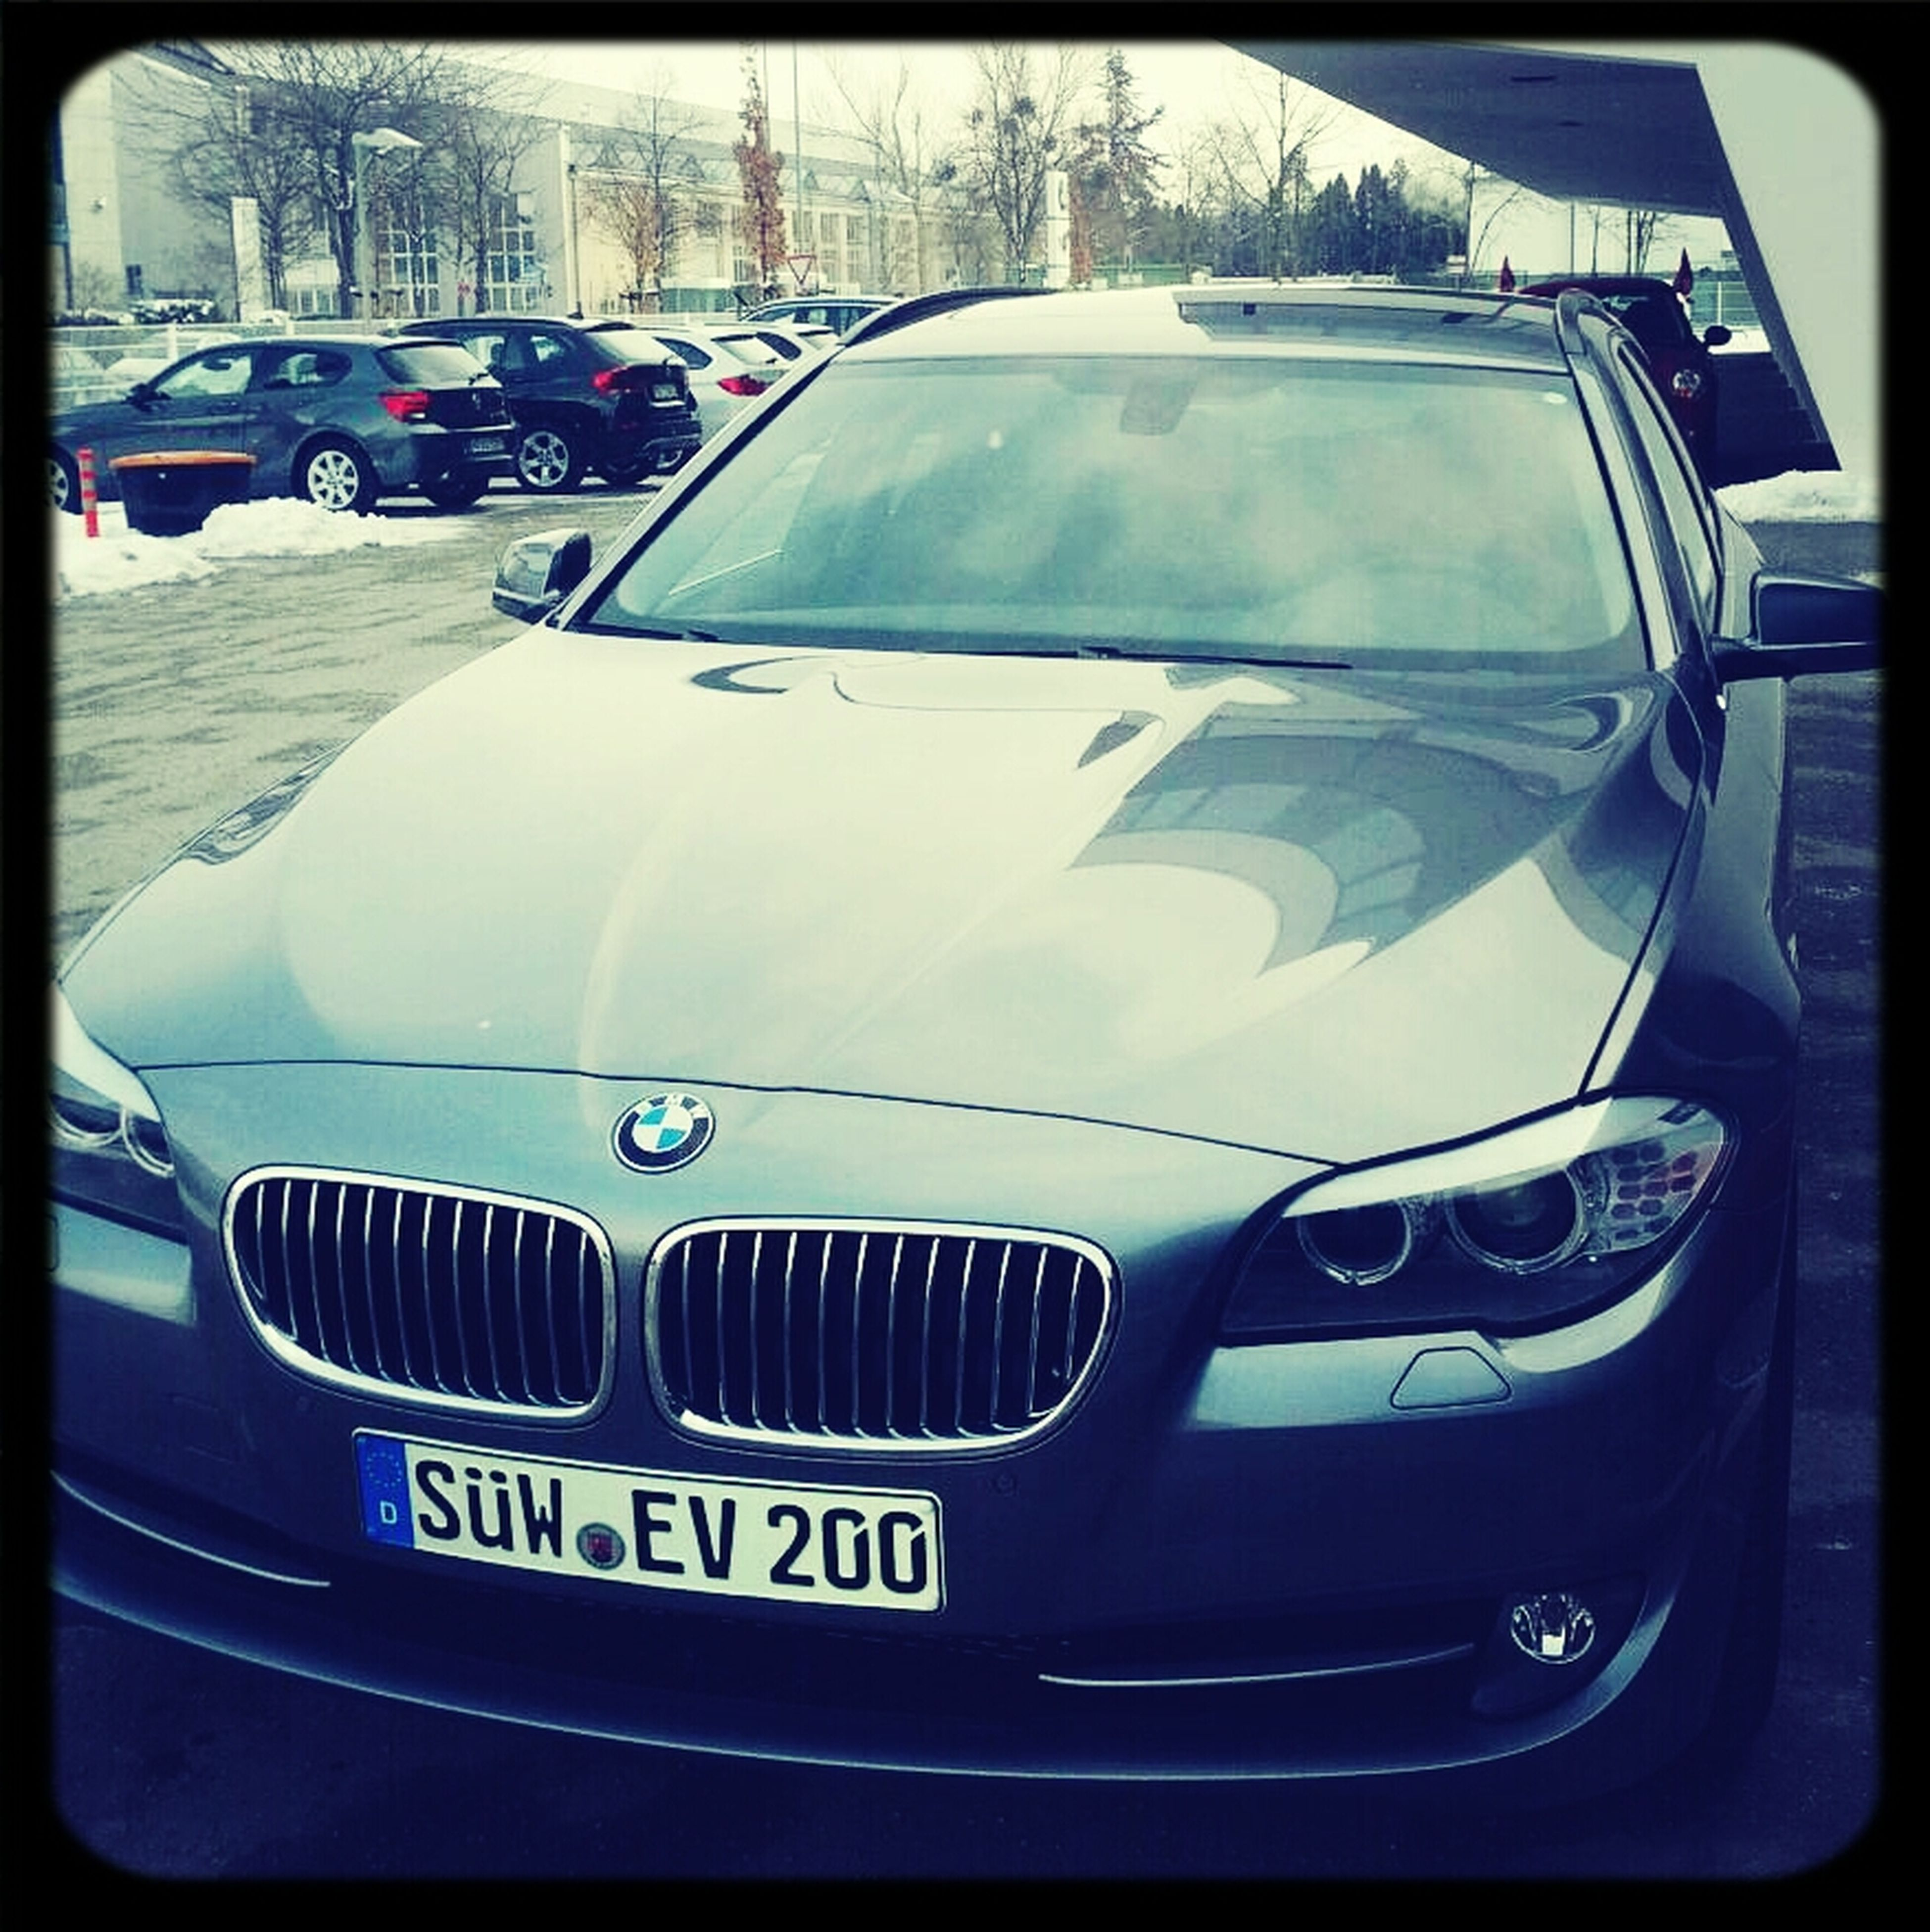 Car of the day: New 5er Touring. #BMW Cars